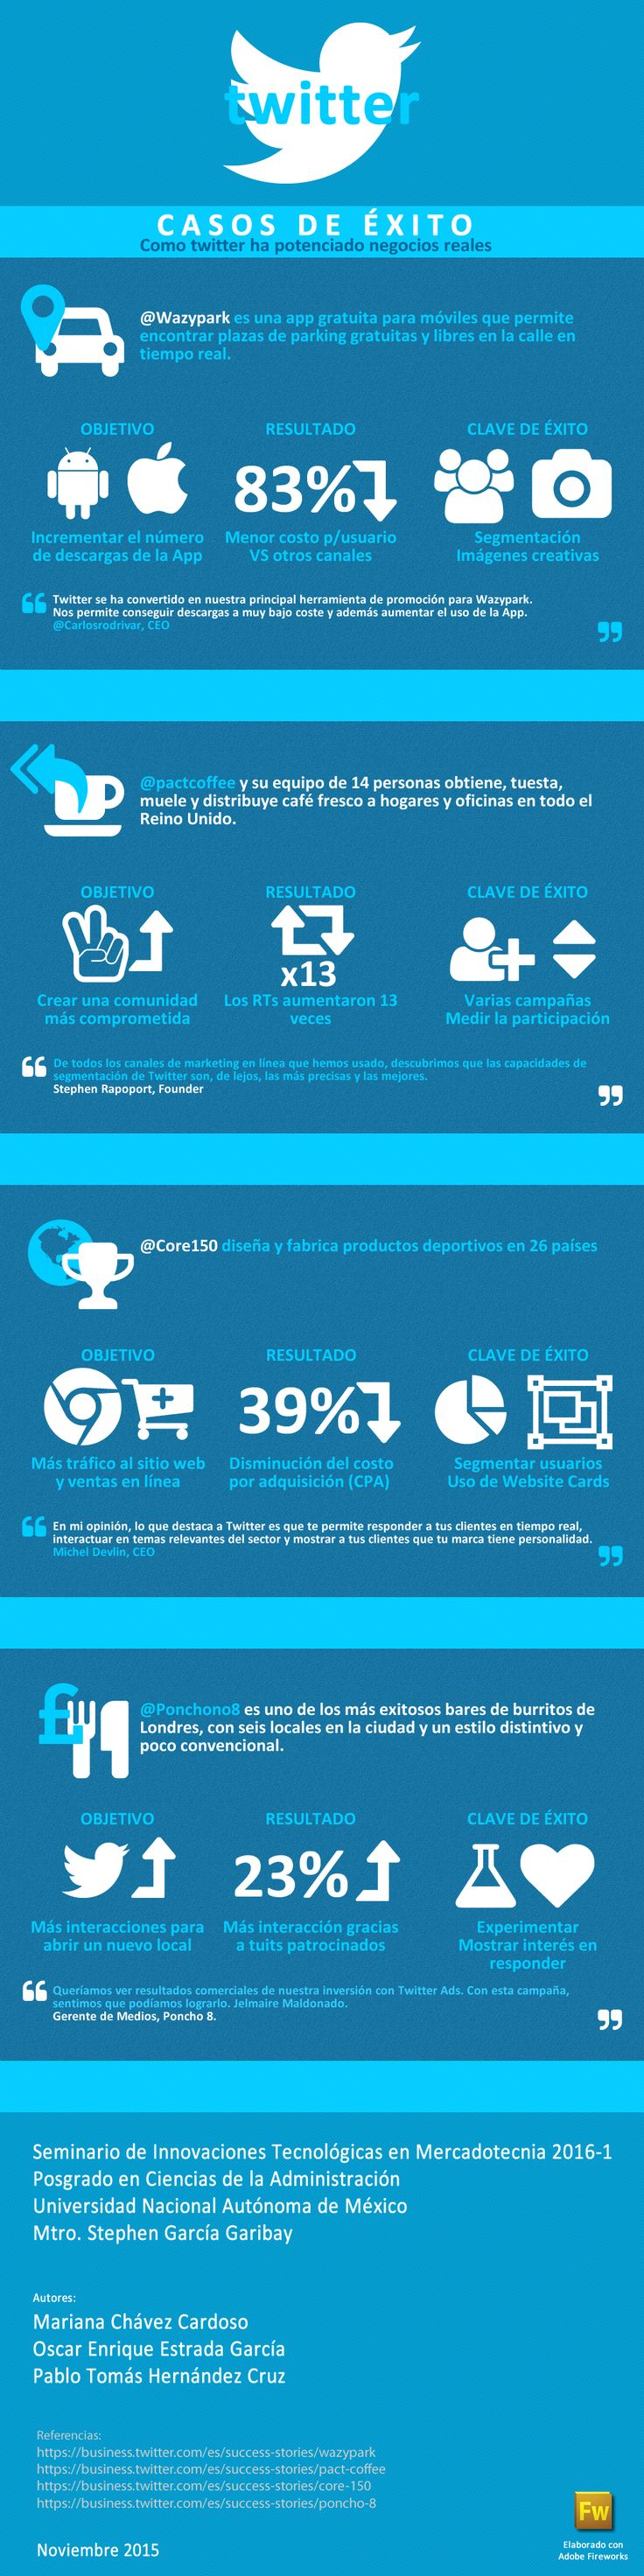 29 best IT MKT 2016-1 images on Pinterest | Website, Graphics and ...